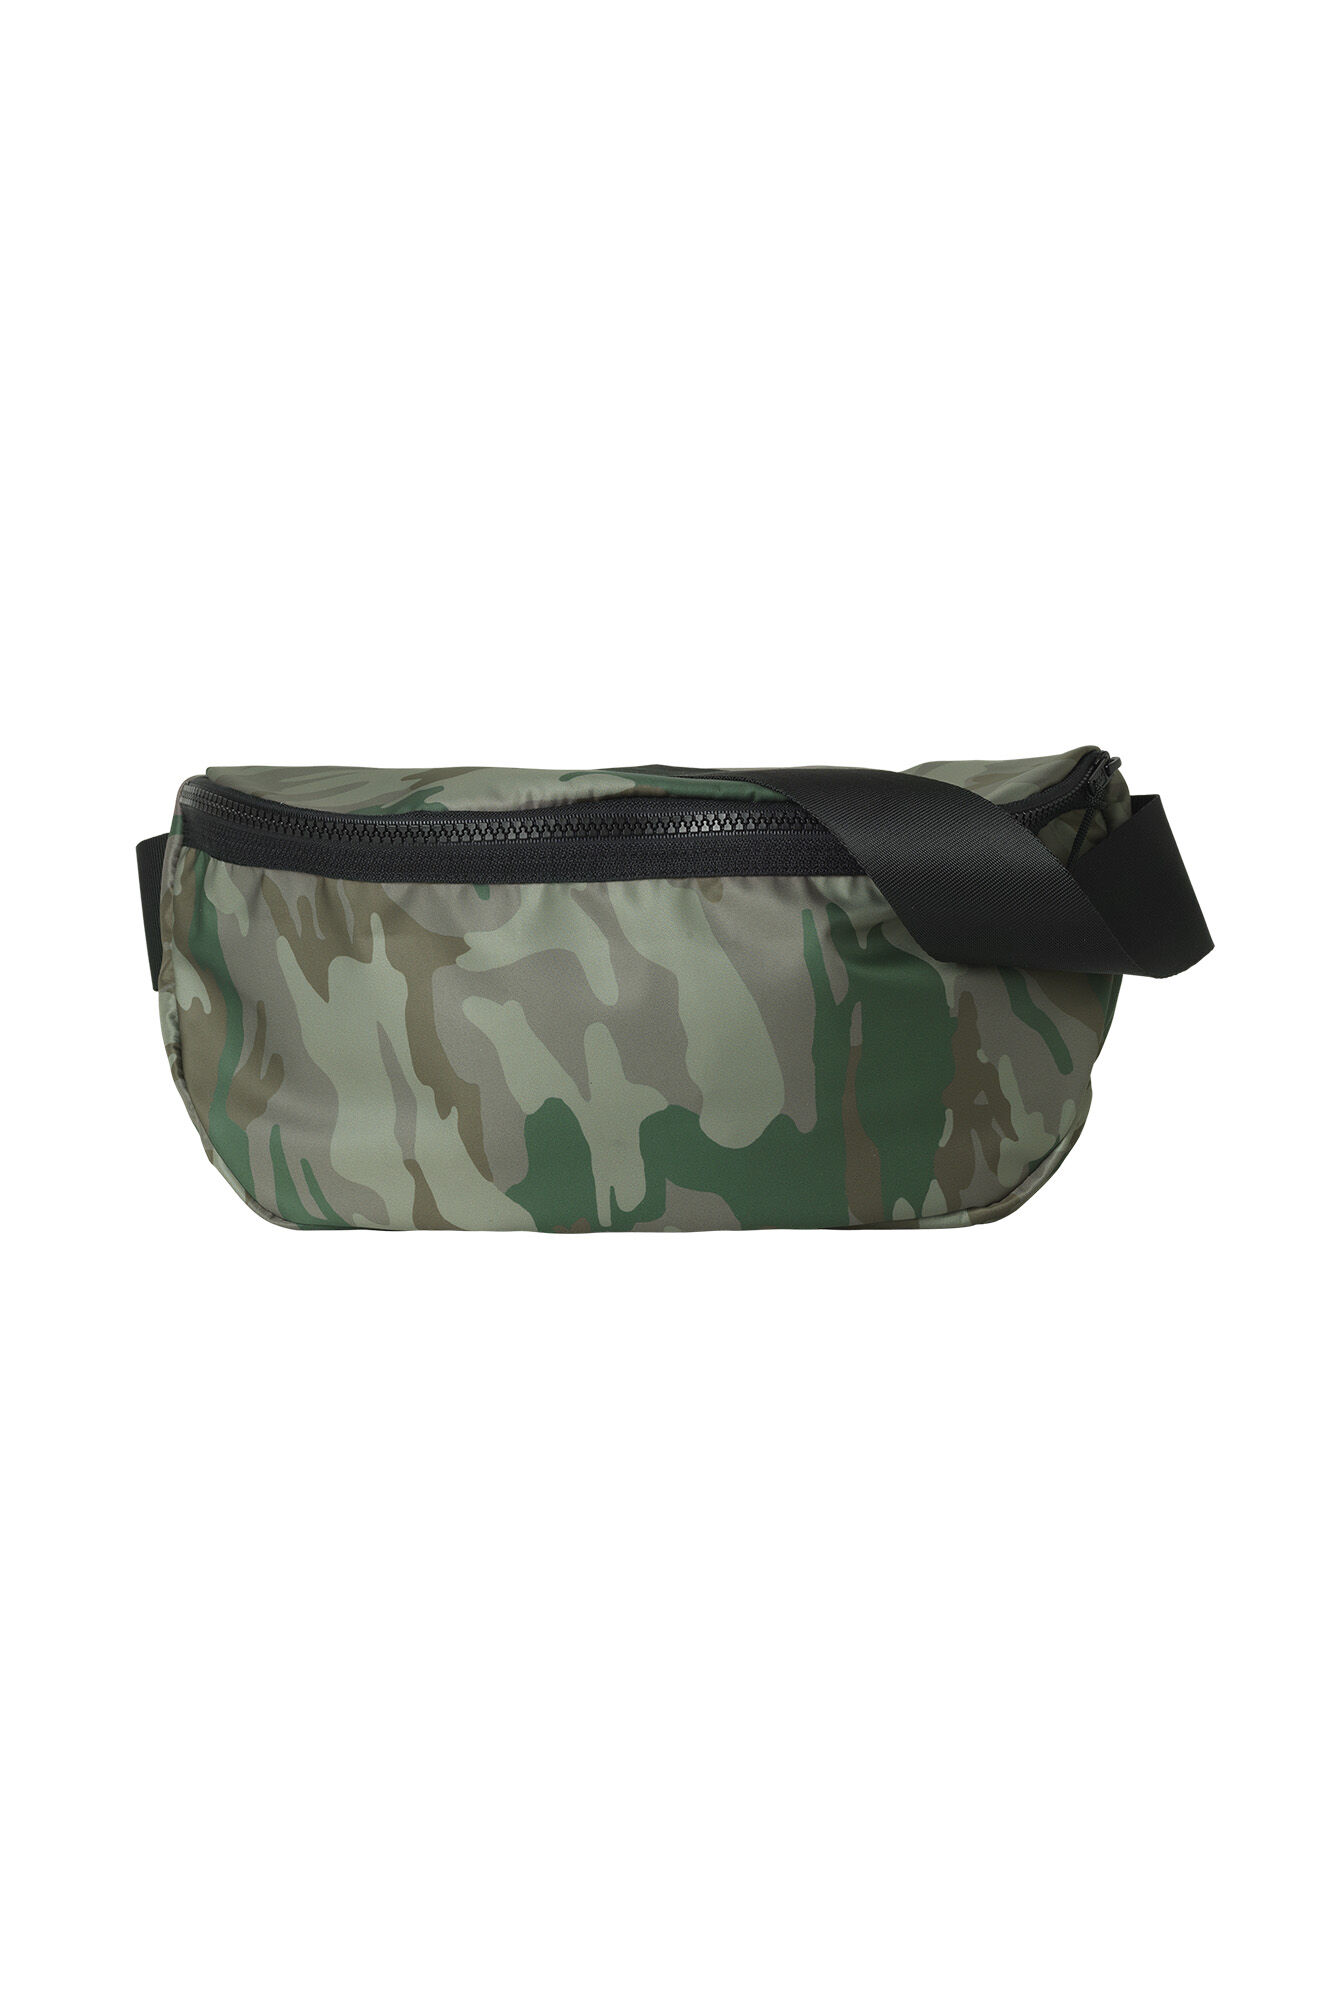 PITCH BUMBAG AOP 6300, ARMY AOP